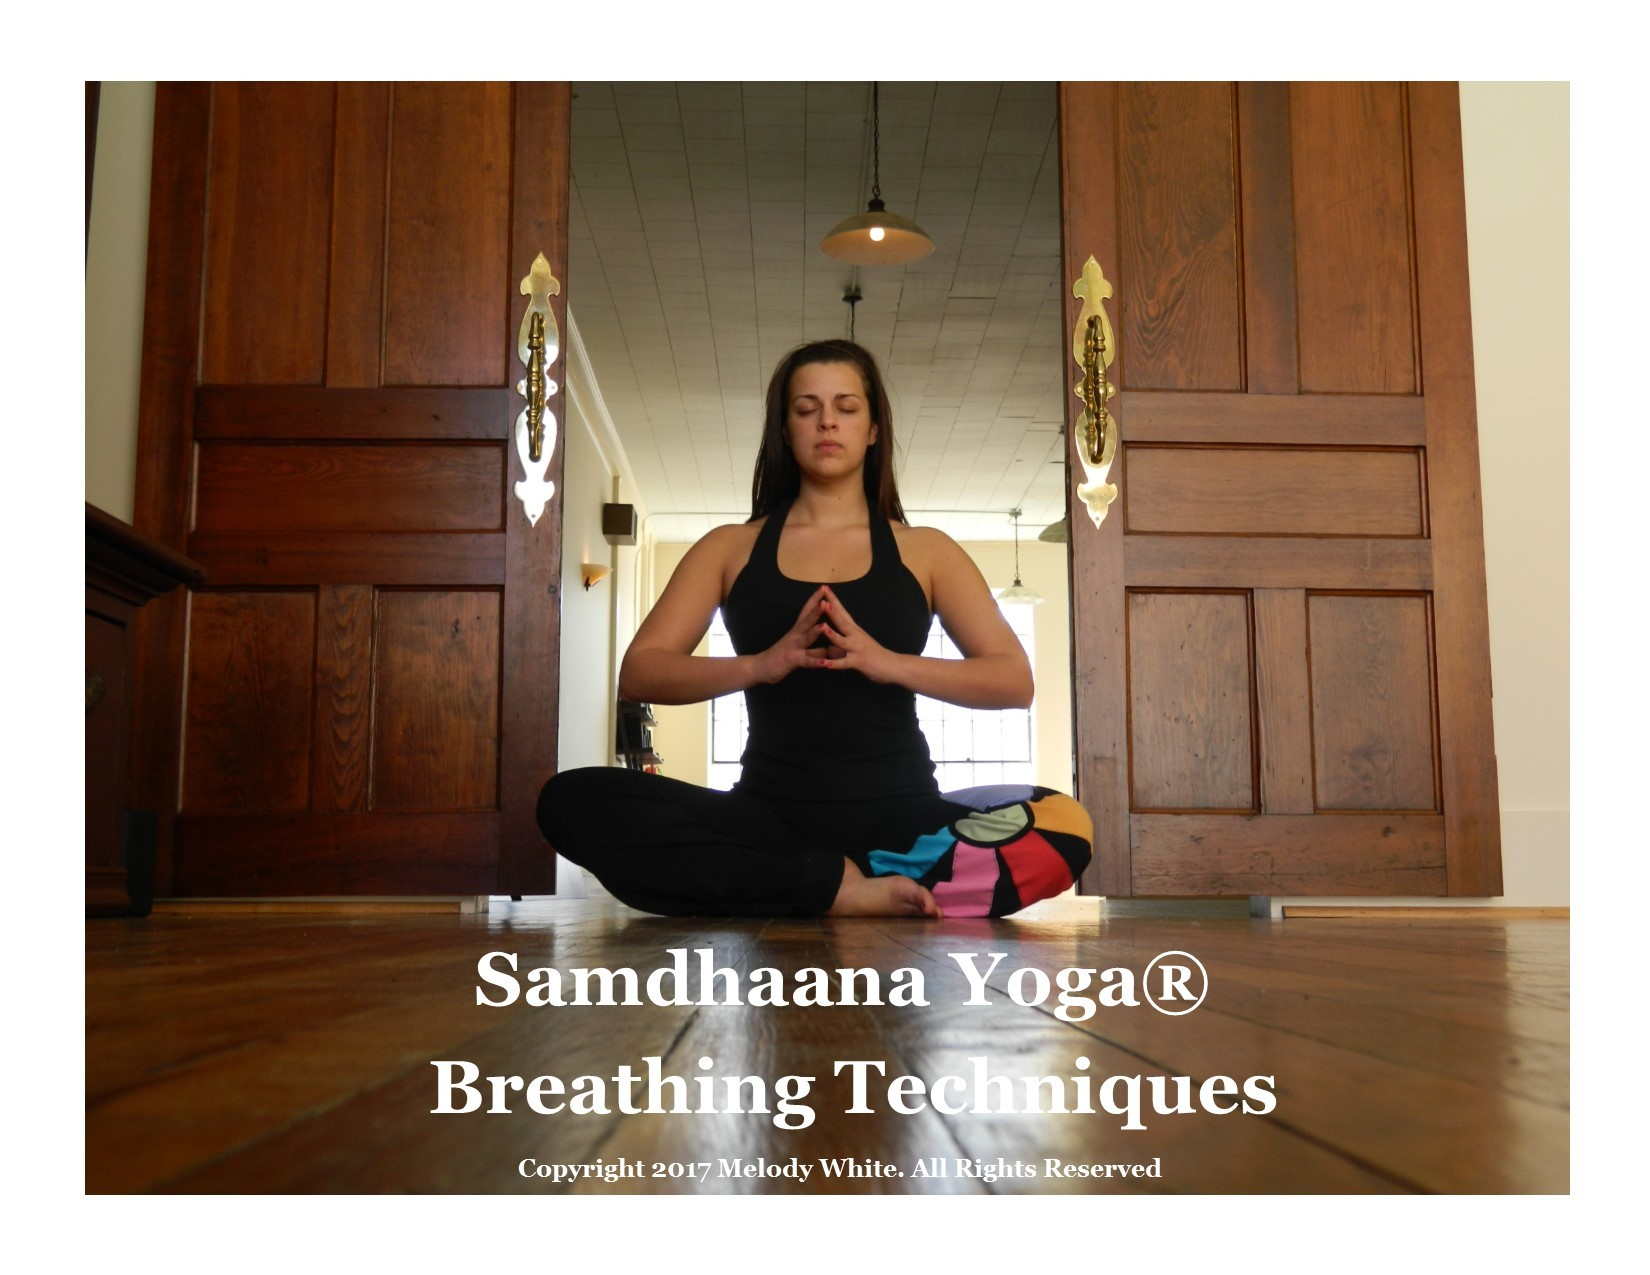 samdhaana yoga breathing techniques